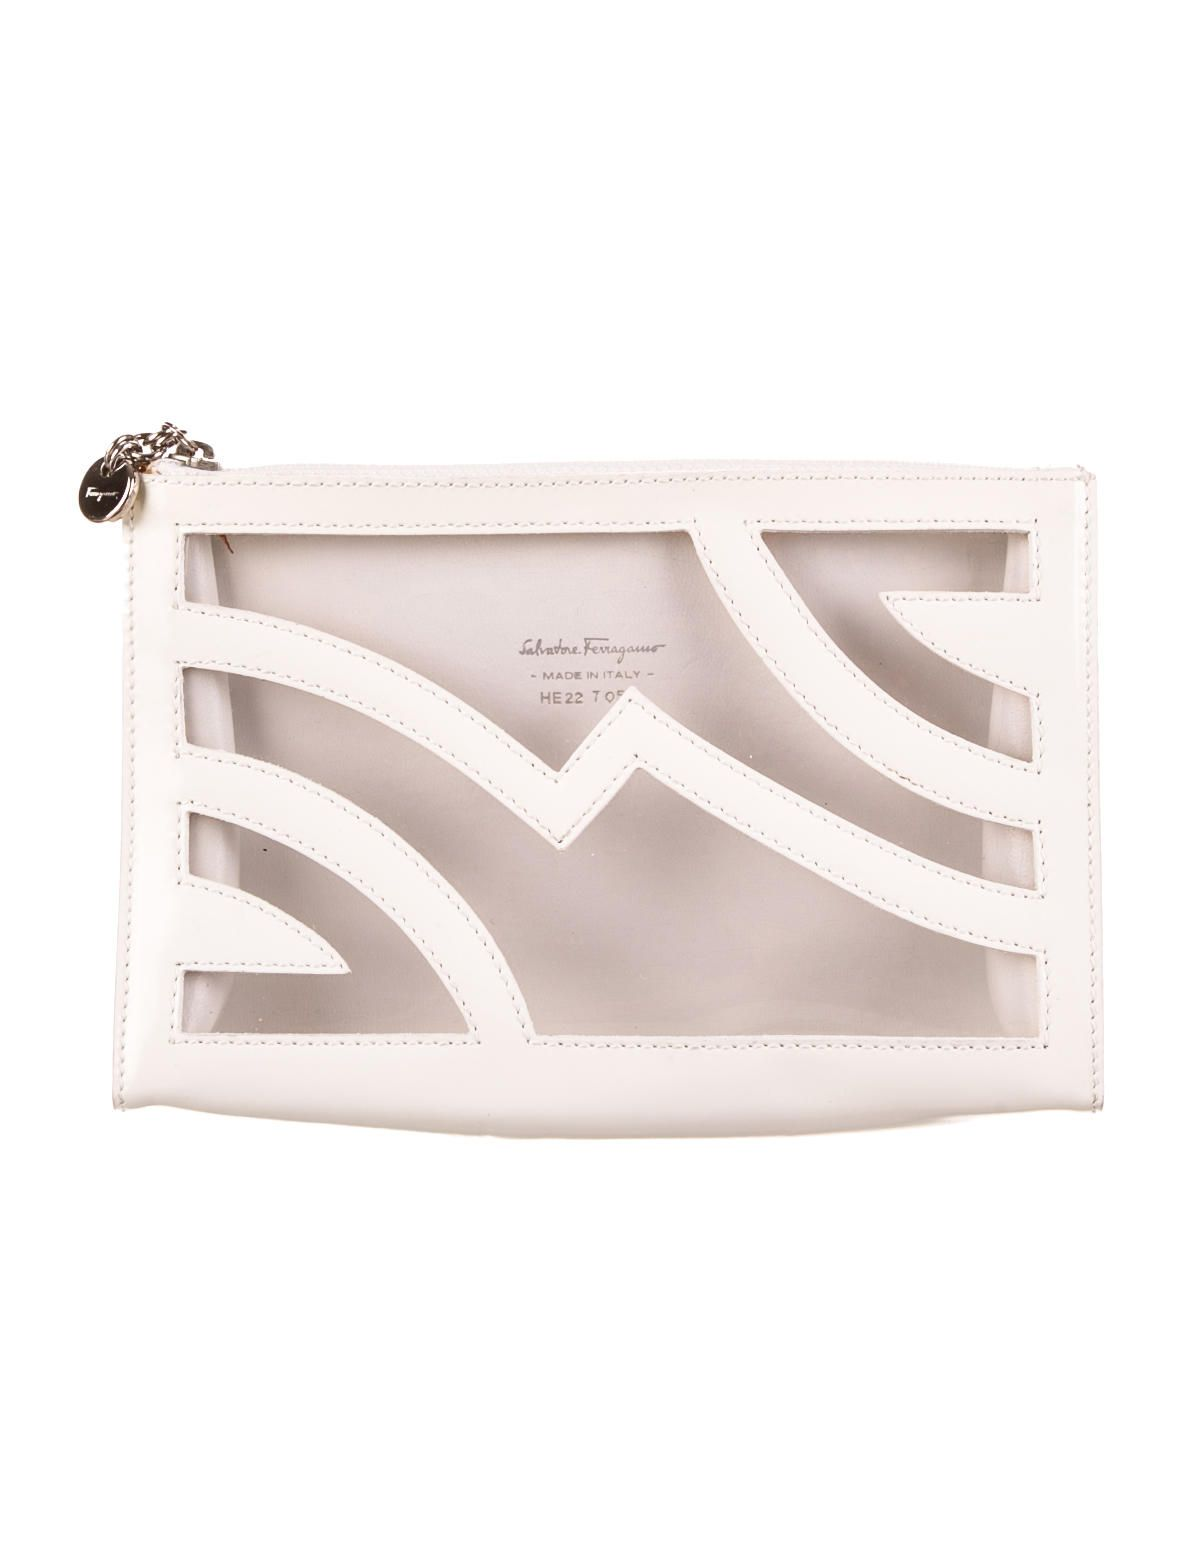 White coated leather Salvatore Ferragamo cosmetic bag with laser cut print  featuring clear PVC underlay and top zip closure. 72d93415ed176